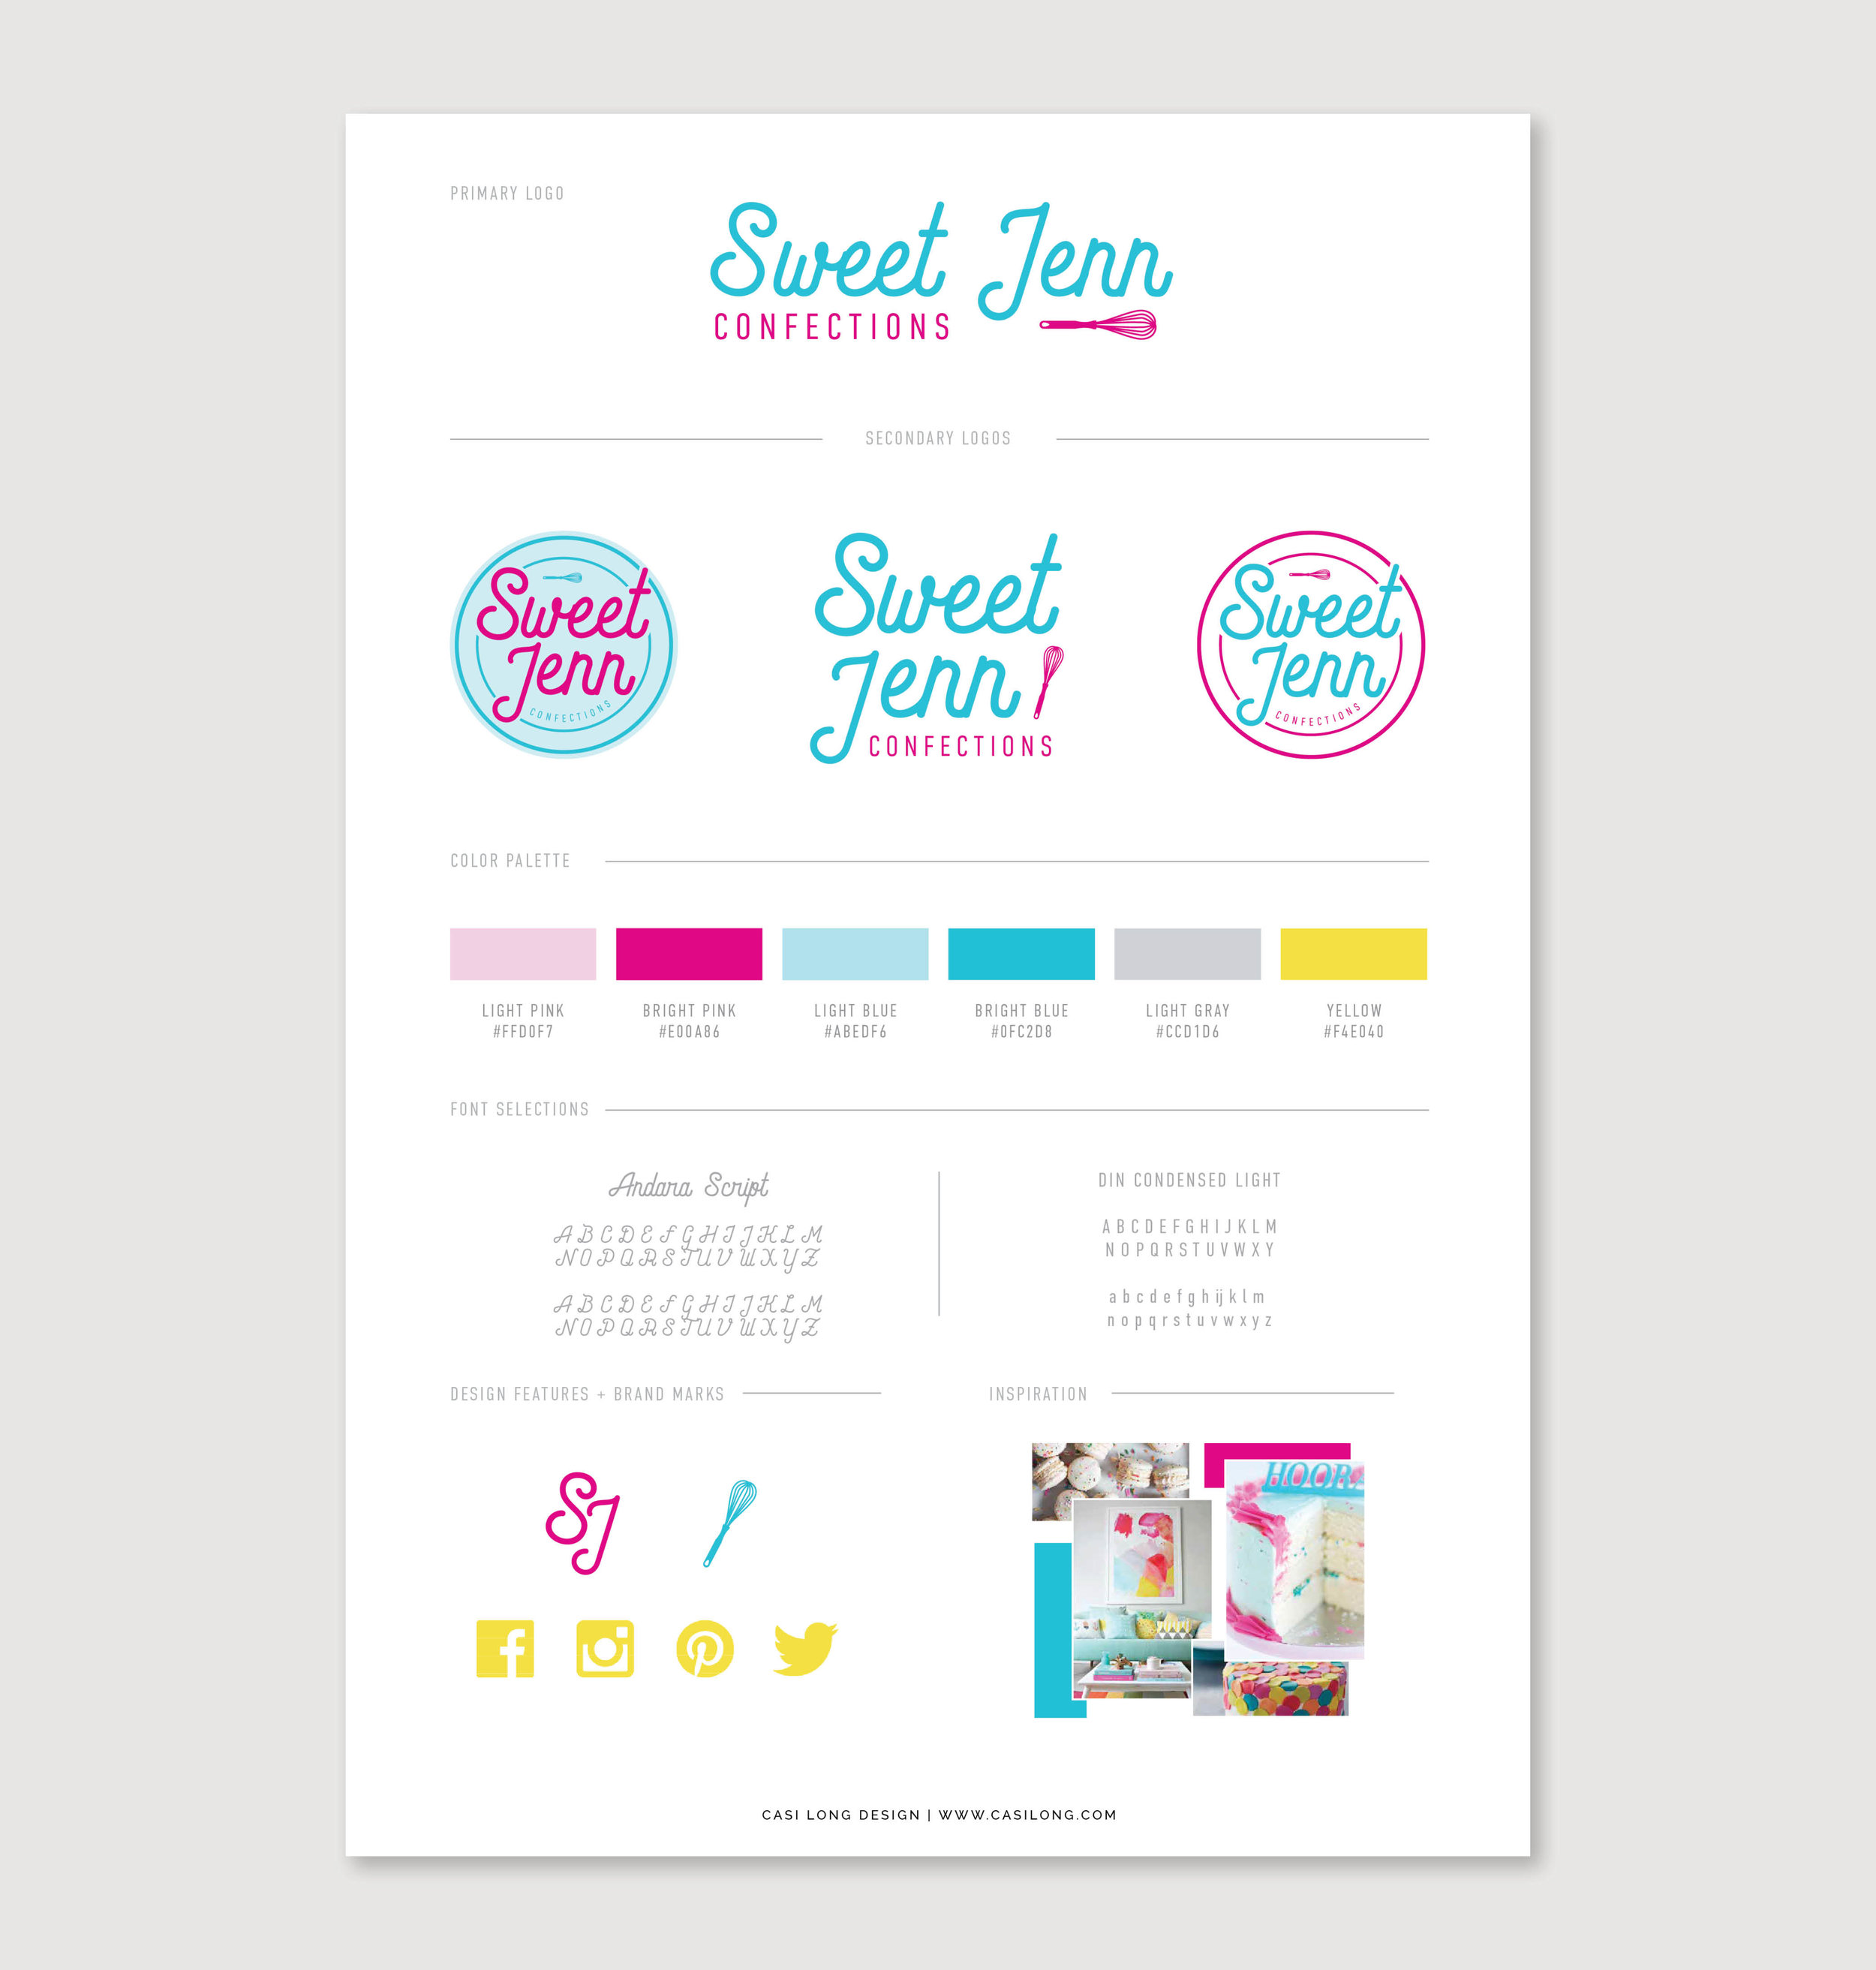 Sweet Jenn Confections branding by Casi Long Design | casilong.com .jpg